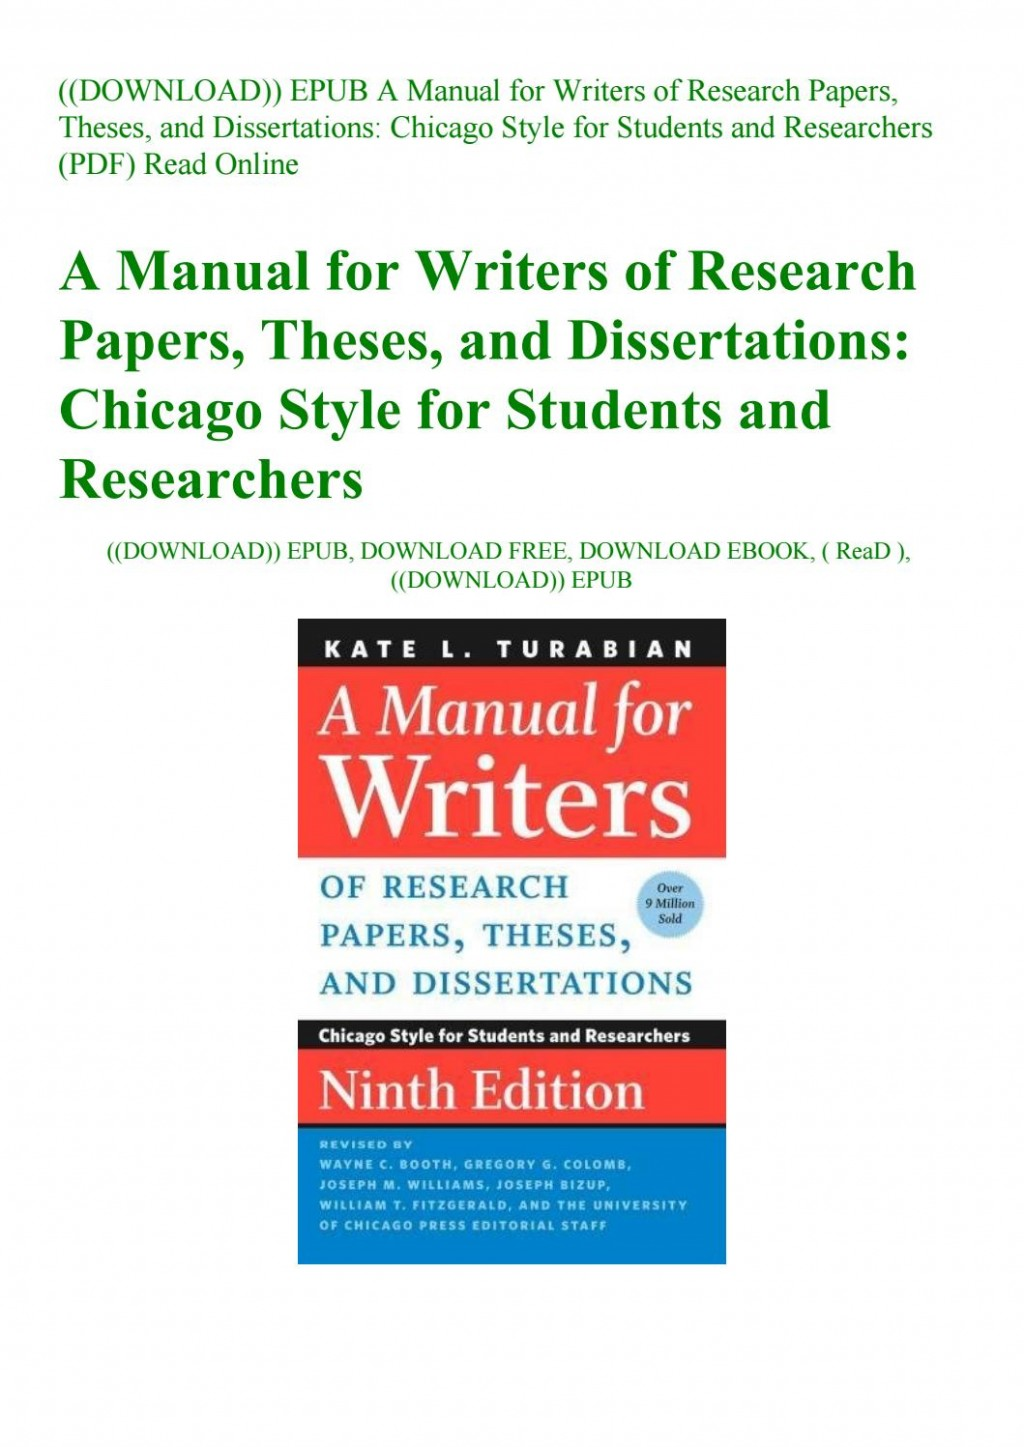 026 Manual For Writers Of Research Papers Theses And Dissertations Turabian Paper Page 1 Amazing A Pdf Large